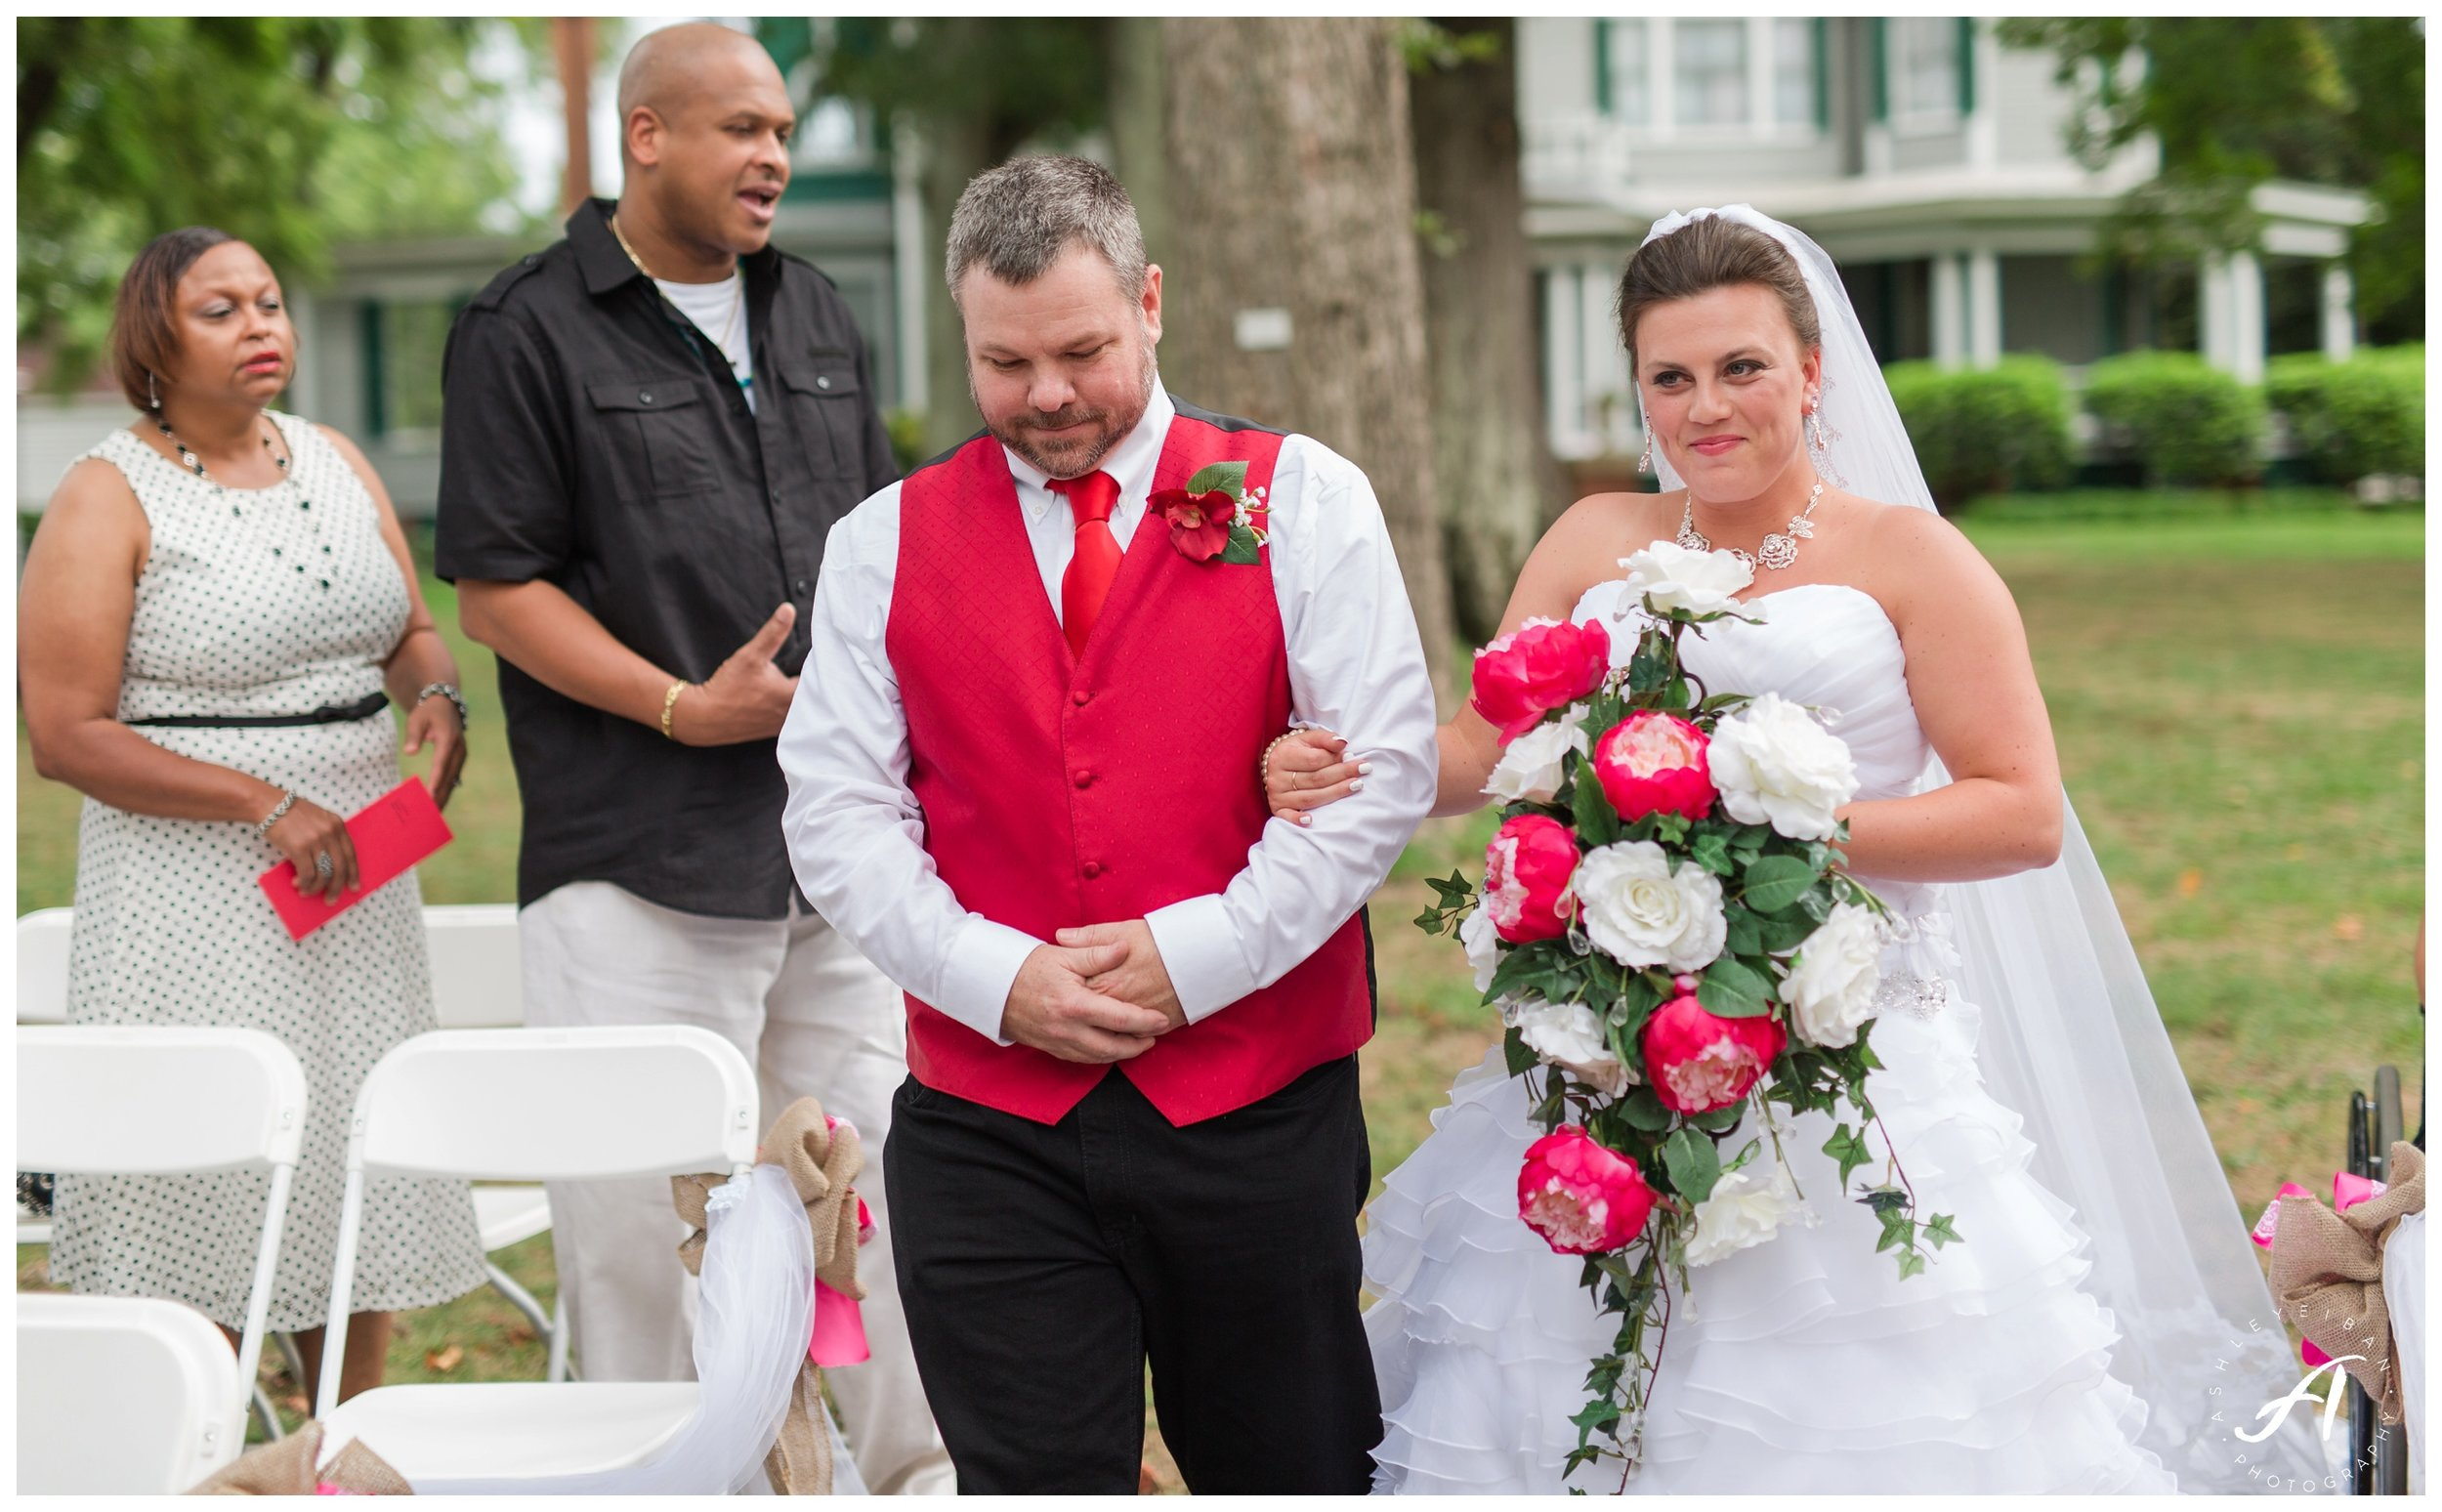 Avoca Museum Wedding || Central VA Wedding || Lynchburg Virginia Wedding Photographer || www.ashleyeiban.com